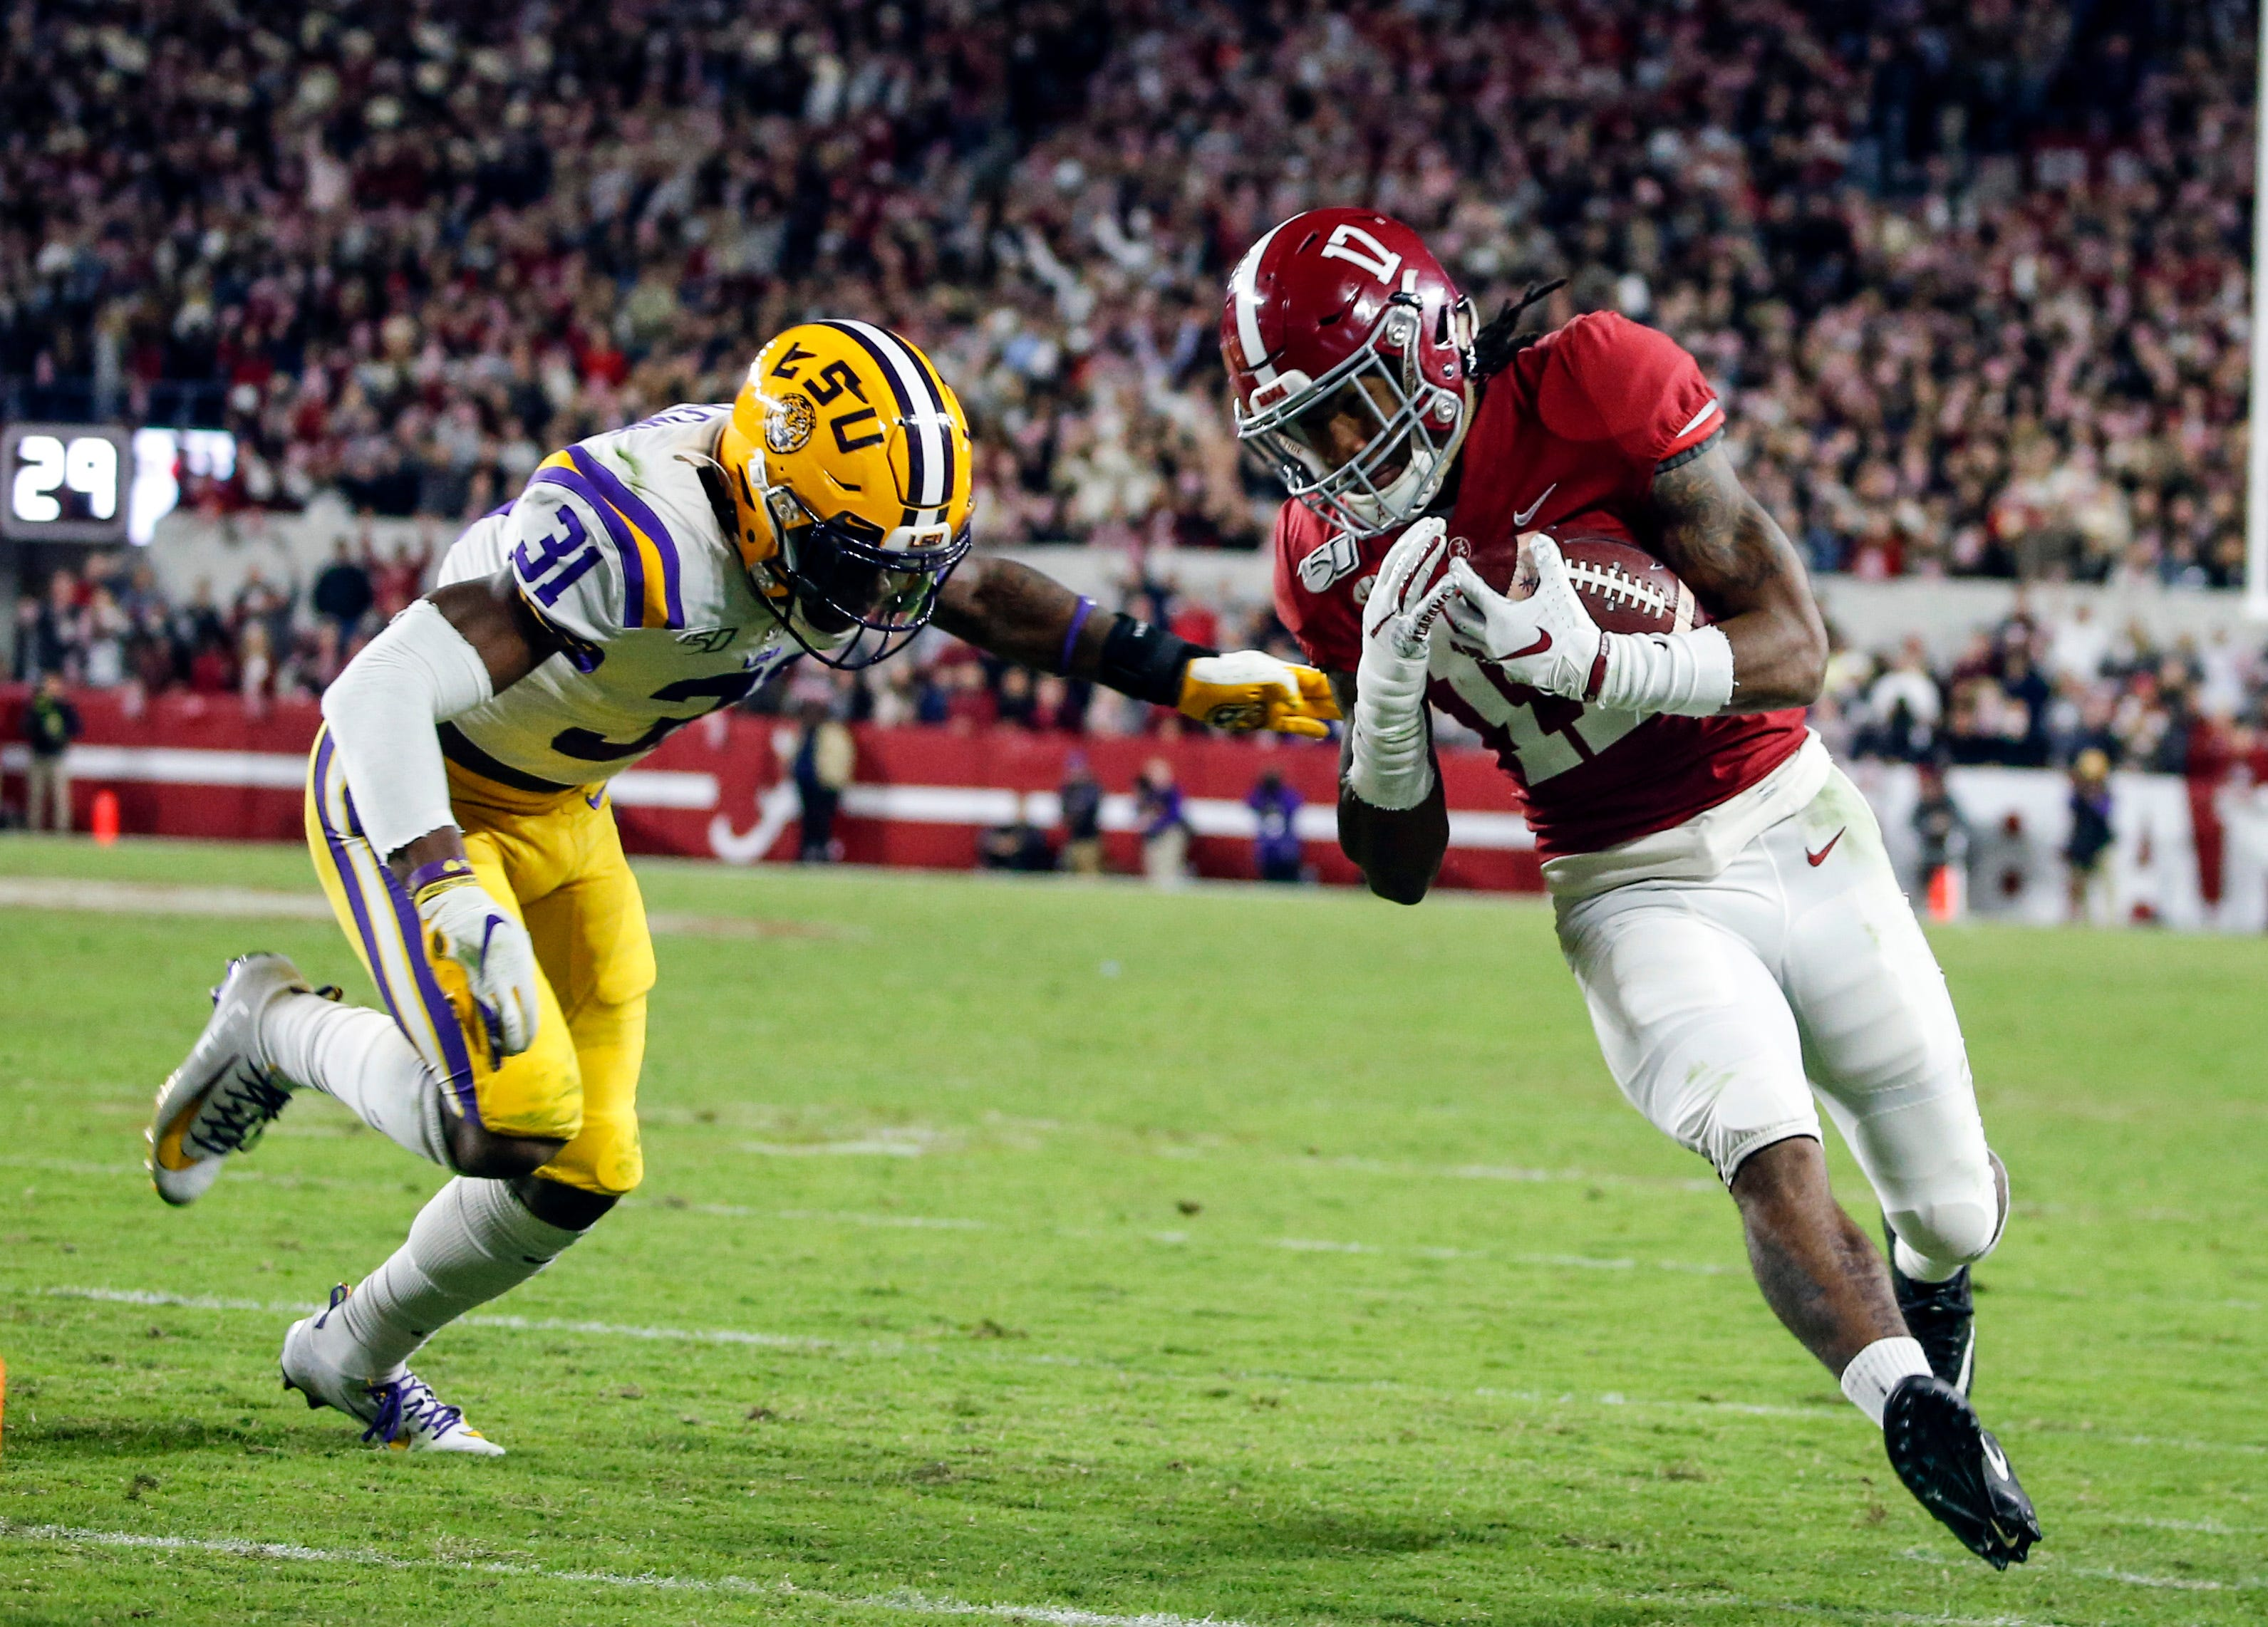 SEC commissioner confirms that other games may be moved to find a date for LSU and Alabama